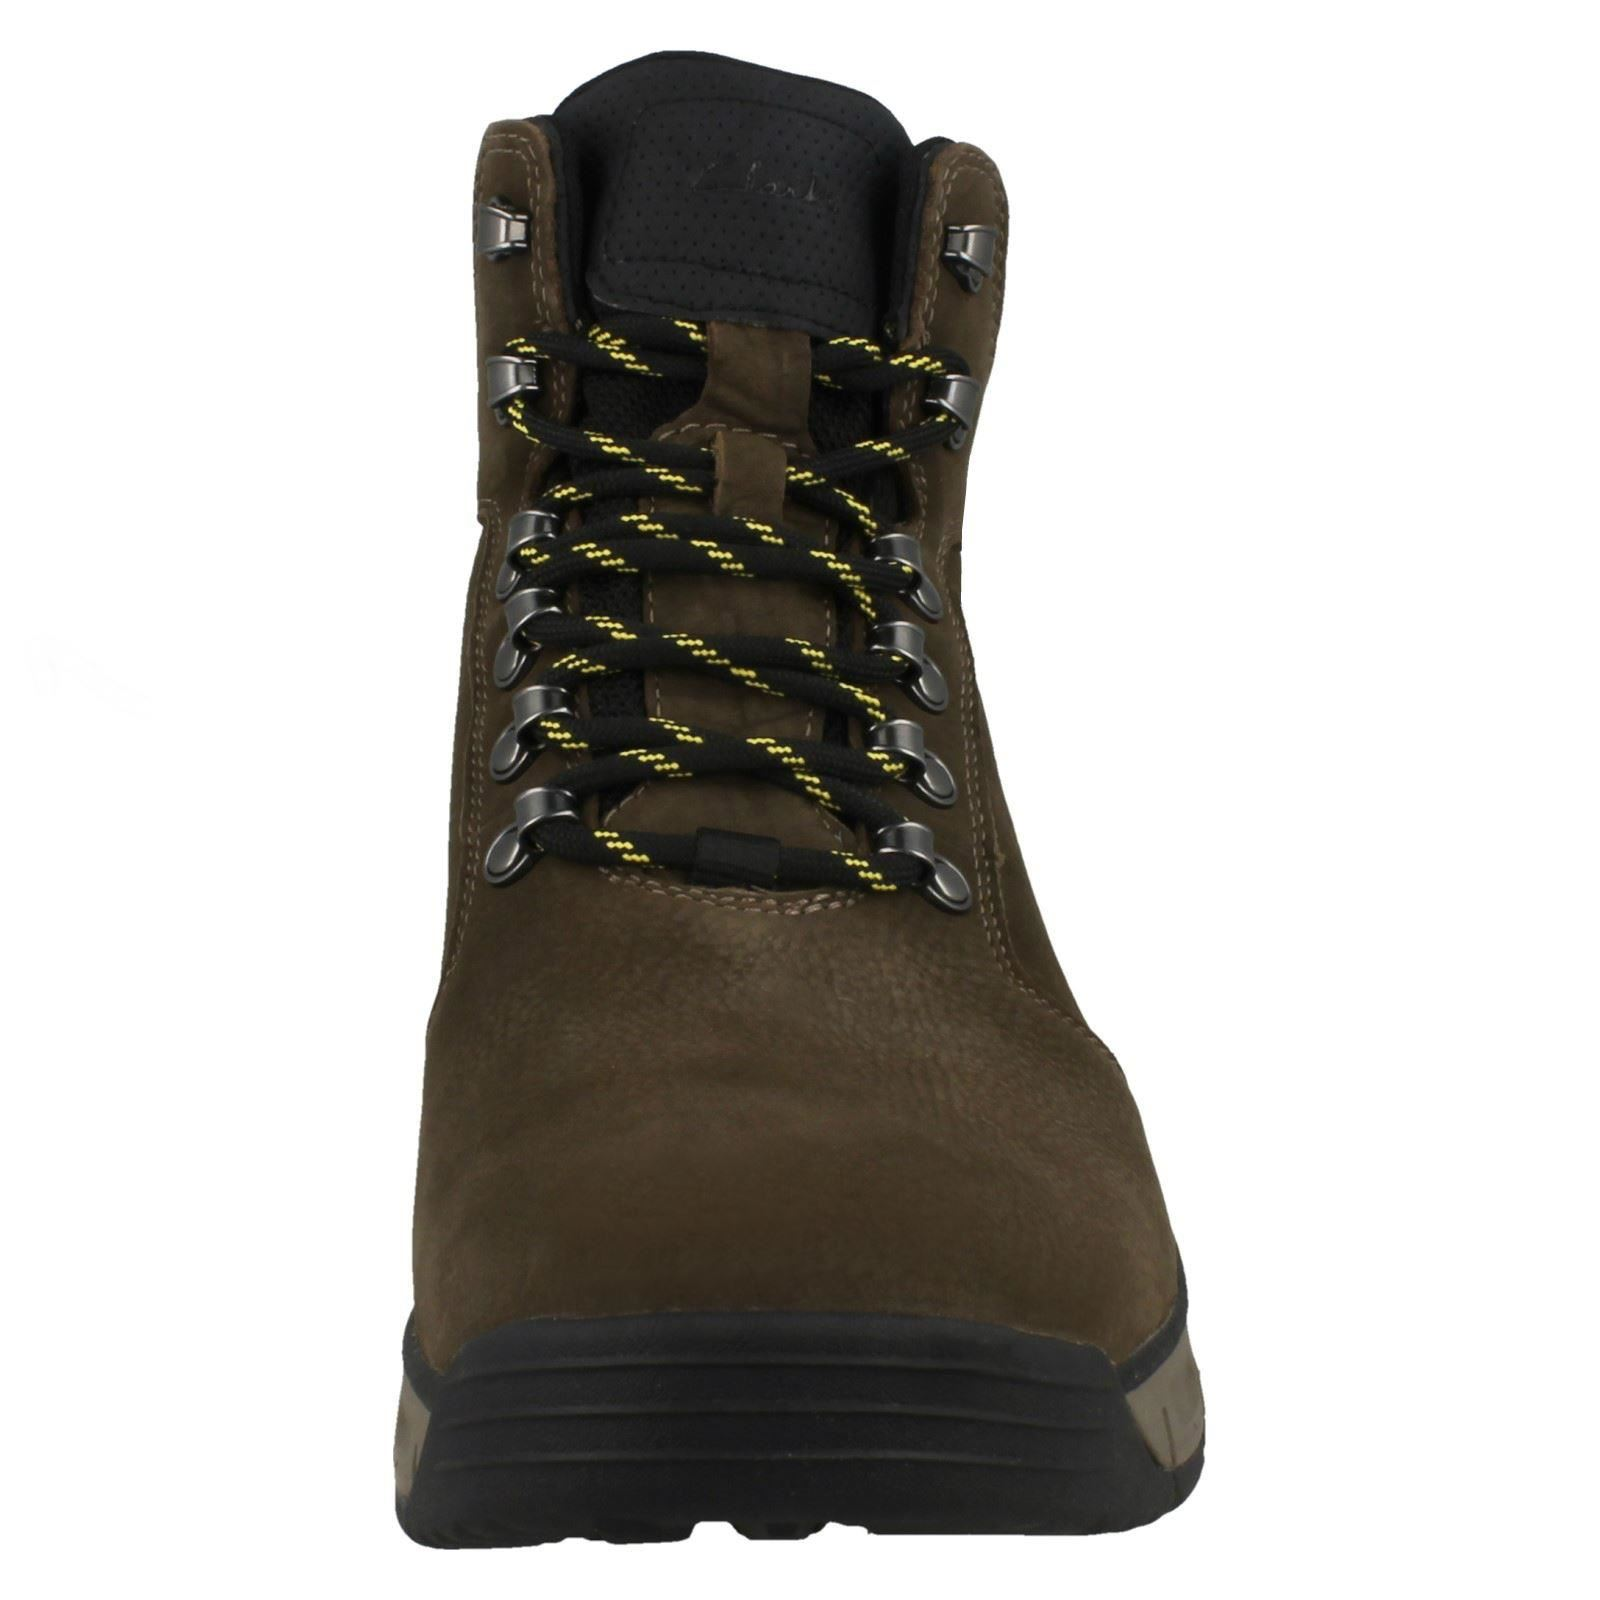 Mens Clarks Lace Up Nubuck Leather Walking Boots Edlund Lo GTX